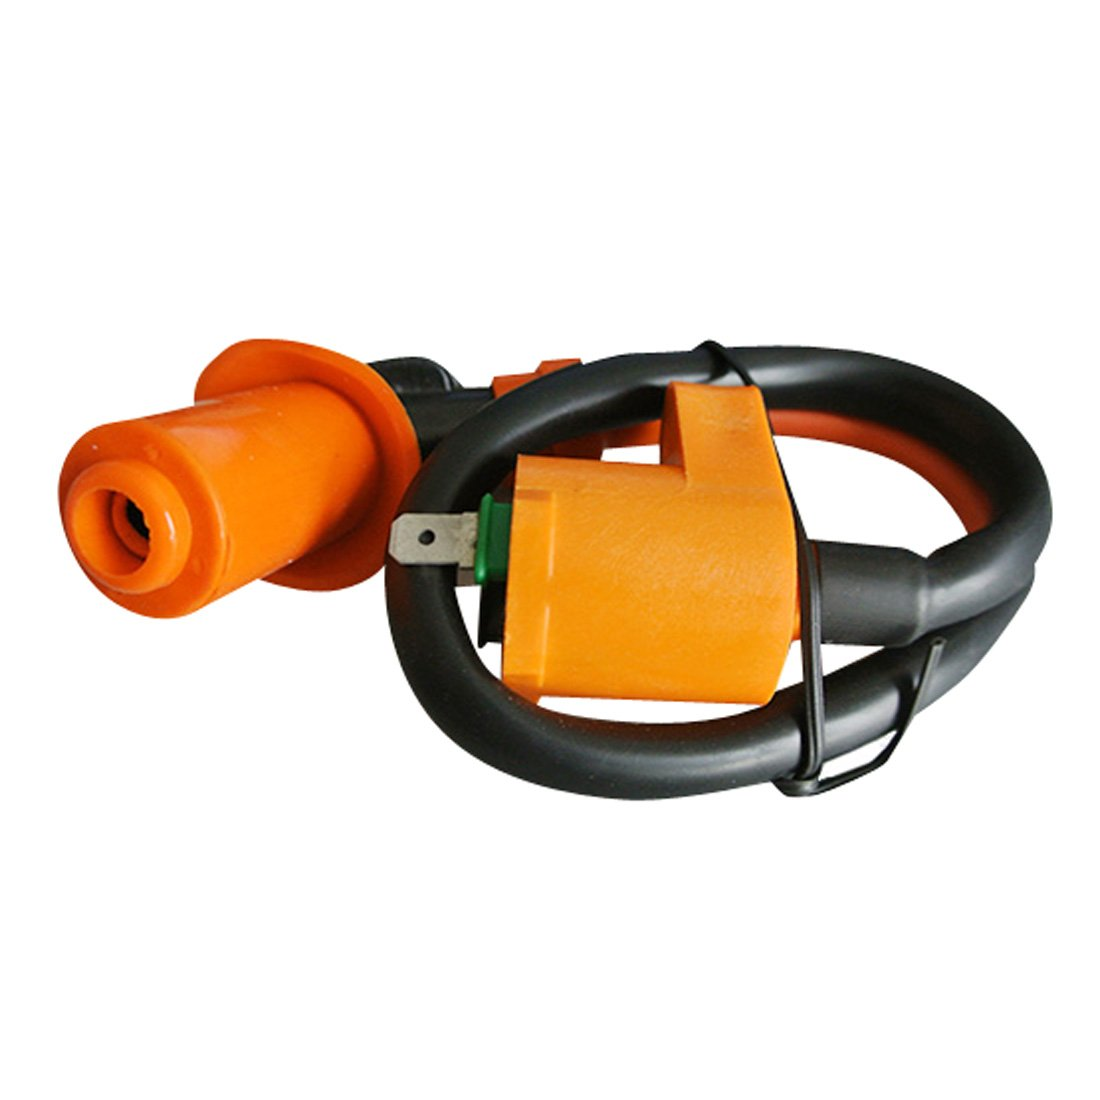 JRL 150cc 50cc GY6 Spark Plug Wire Scooter Moped ATV Go Kart Ignition Coil